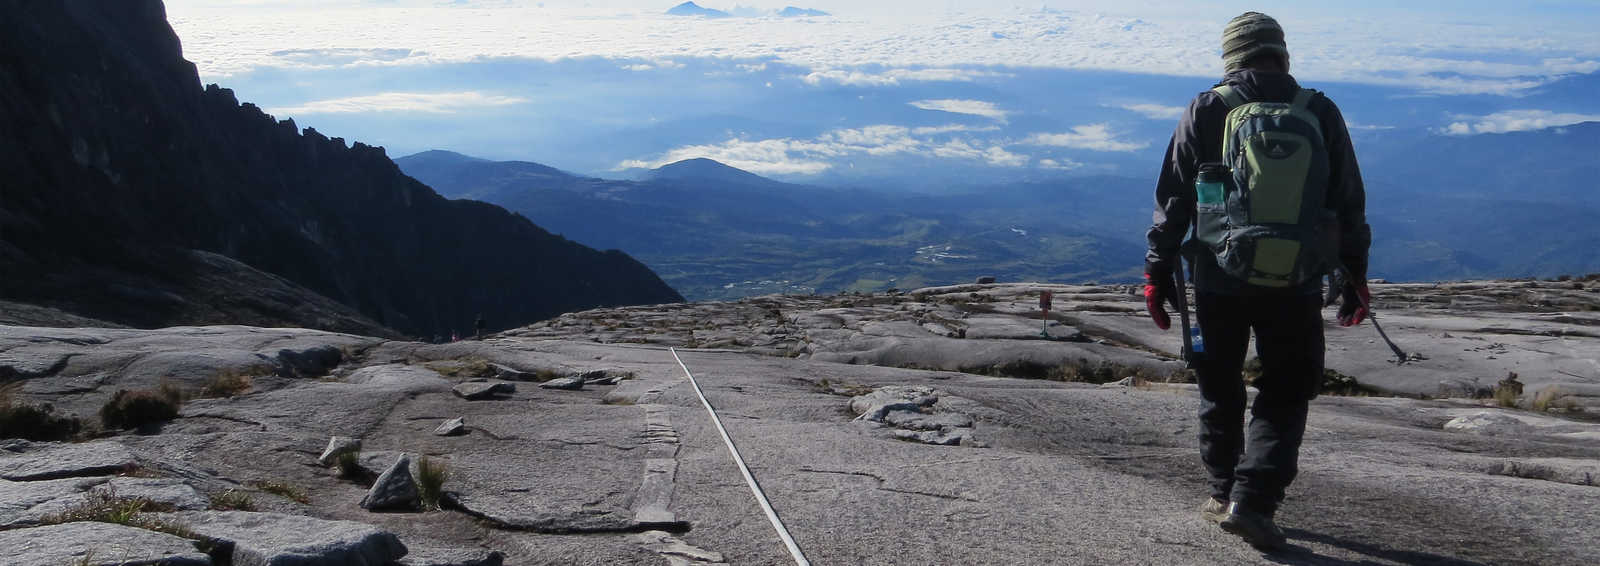 Taking in the view on Mt Kinabalu